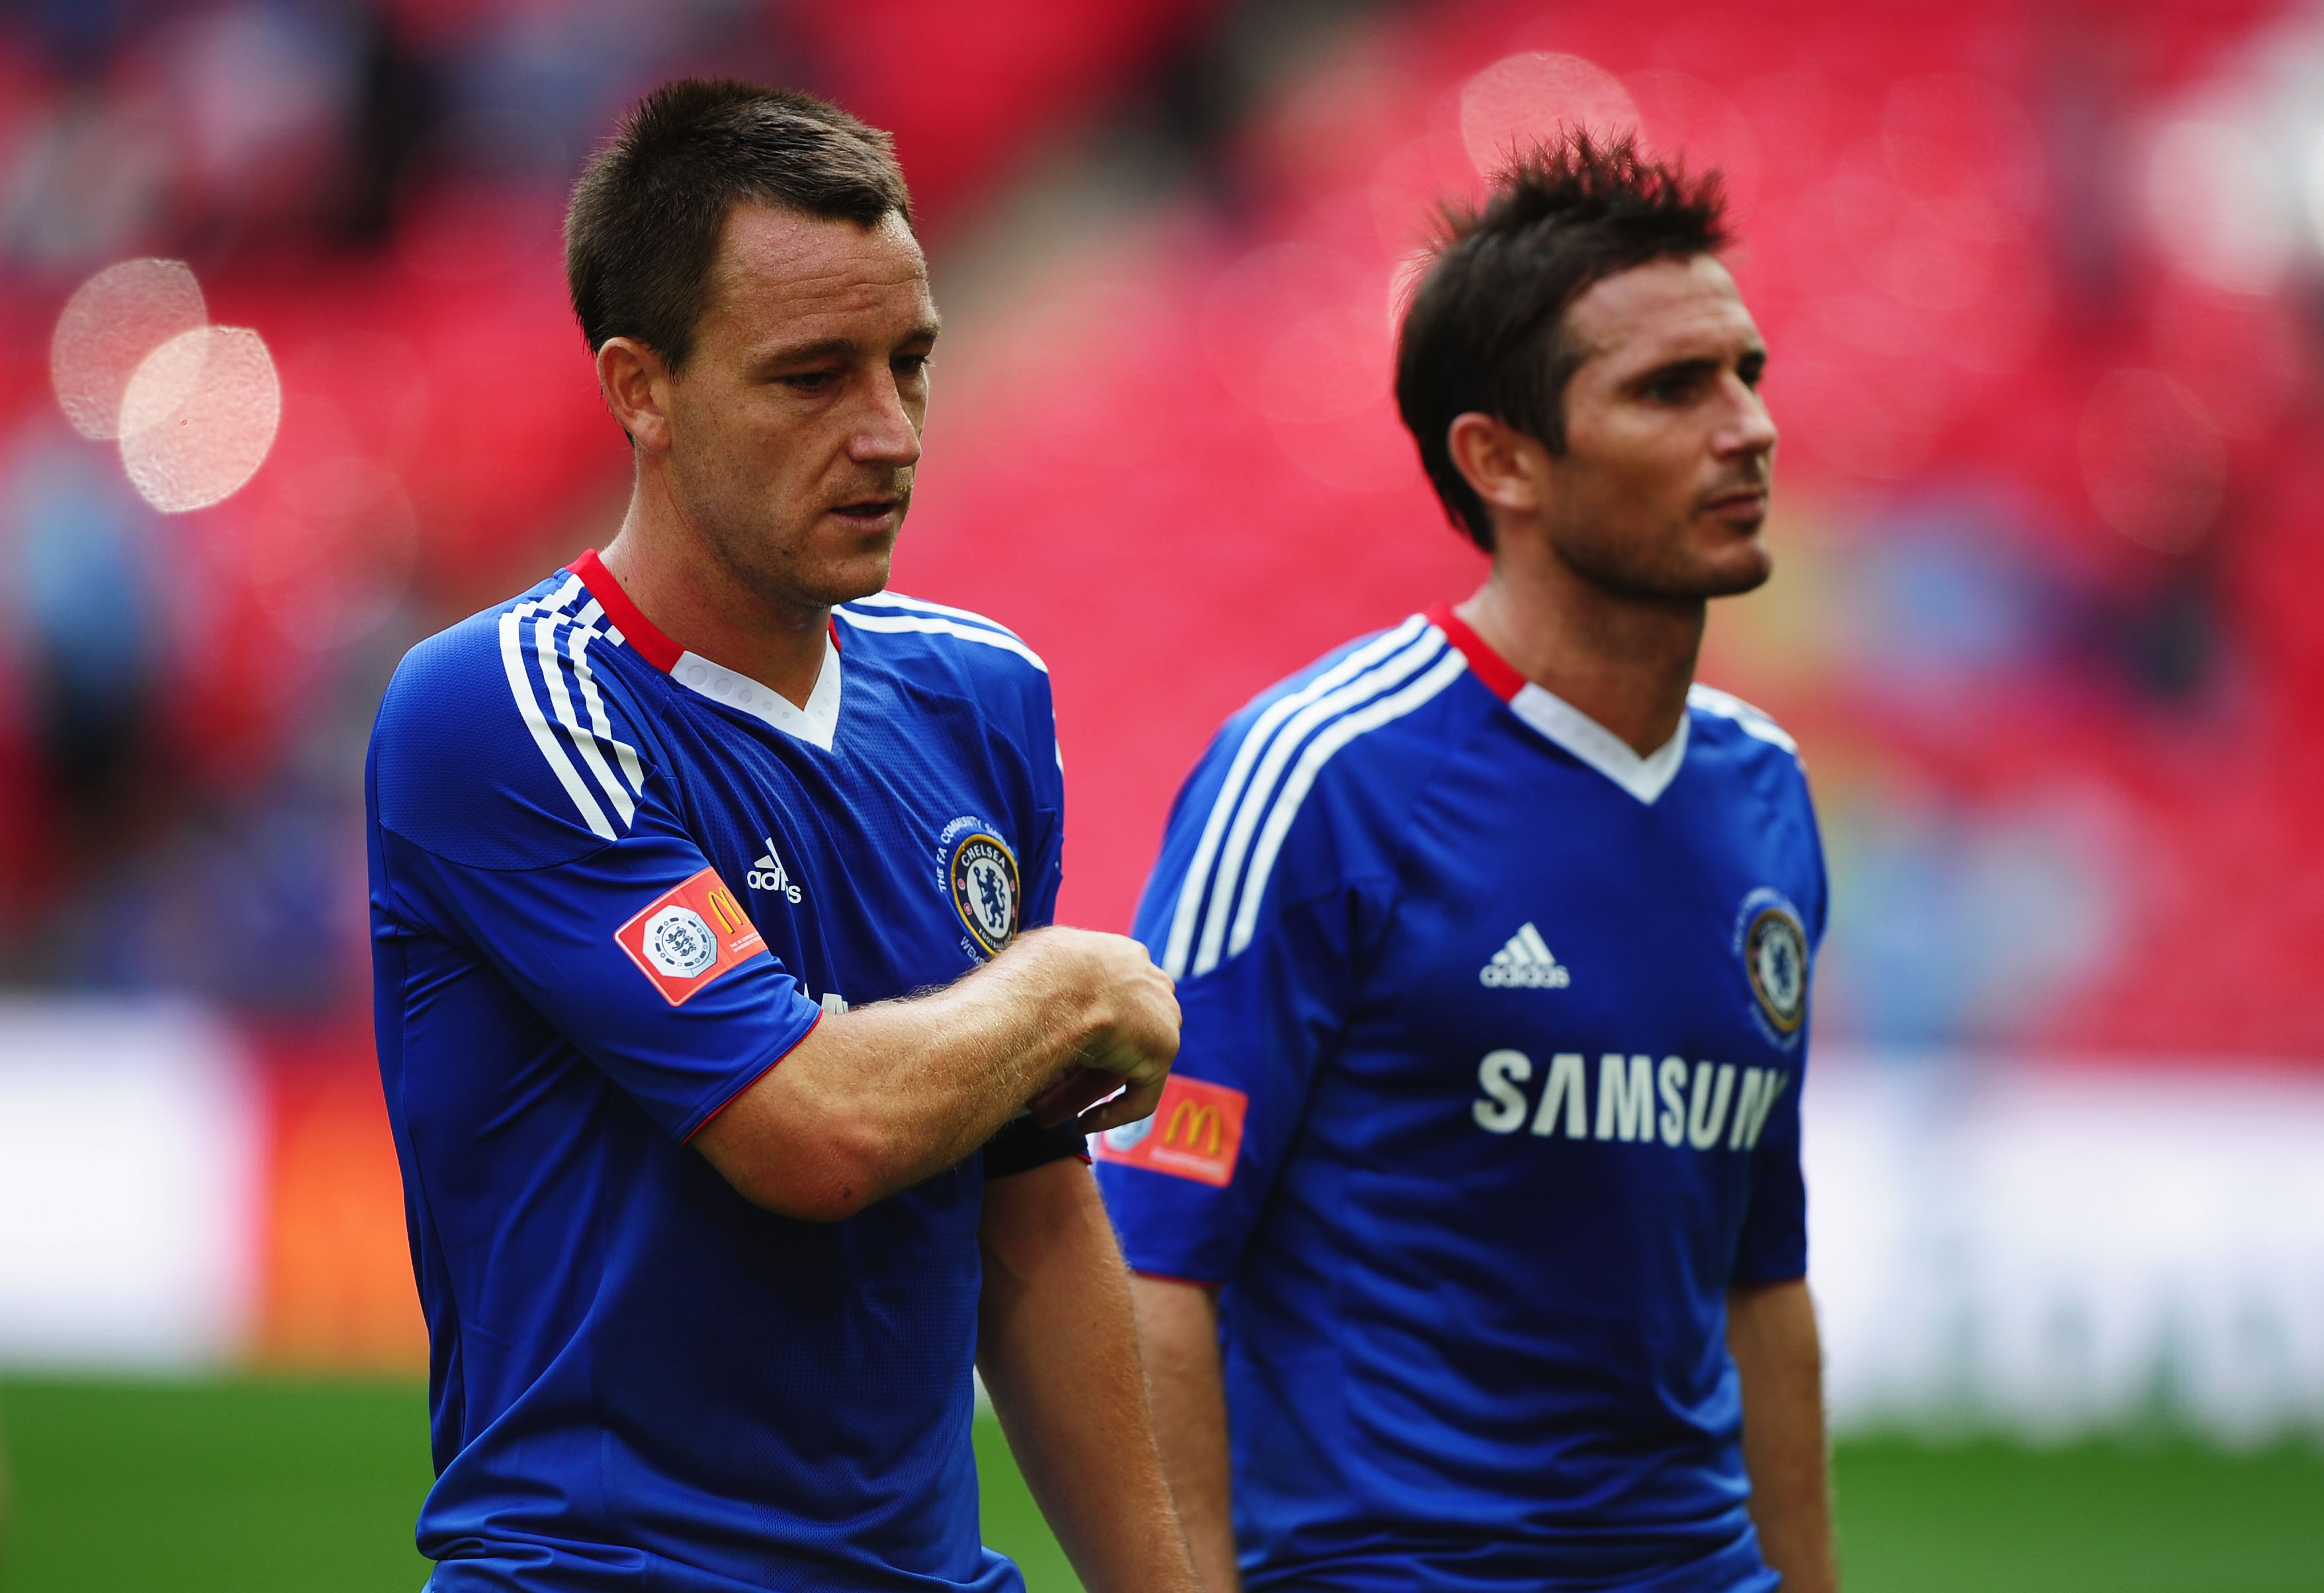 LONDON, ENGLAND - AUGUST 08:  John Terry and Frank Lampard of Chelsea look dejected after the FA Community Shield match between Chelsea and Manchester United at Wembley Stadium on August 8, 2010 in London, England.  (Photo by Laurence Griffiths/Getty Imag